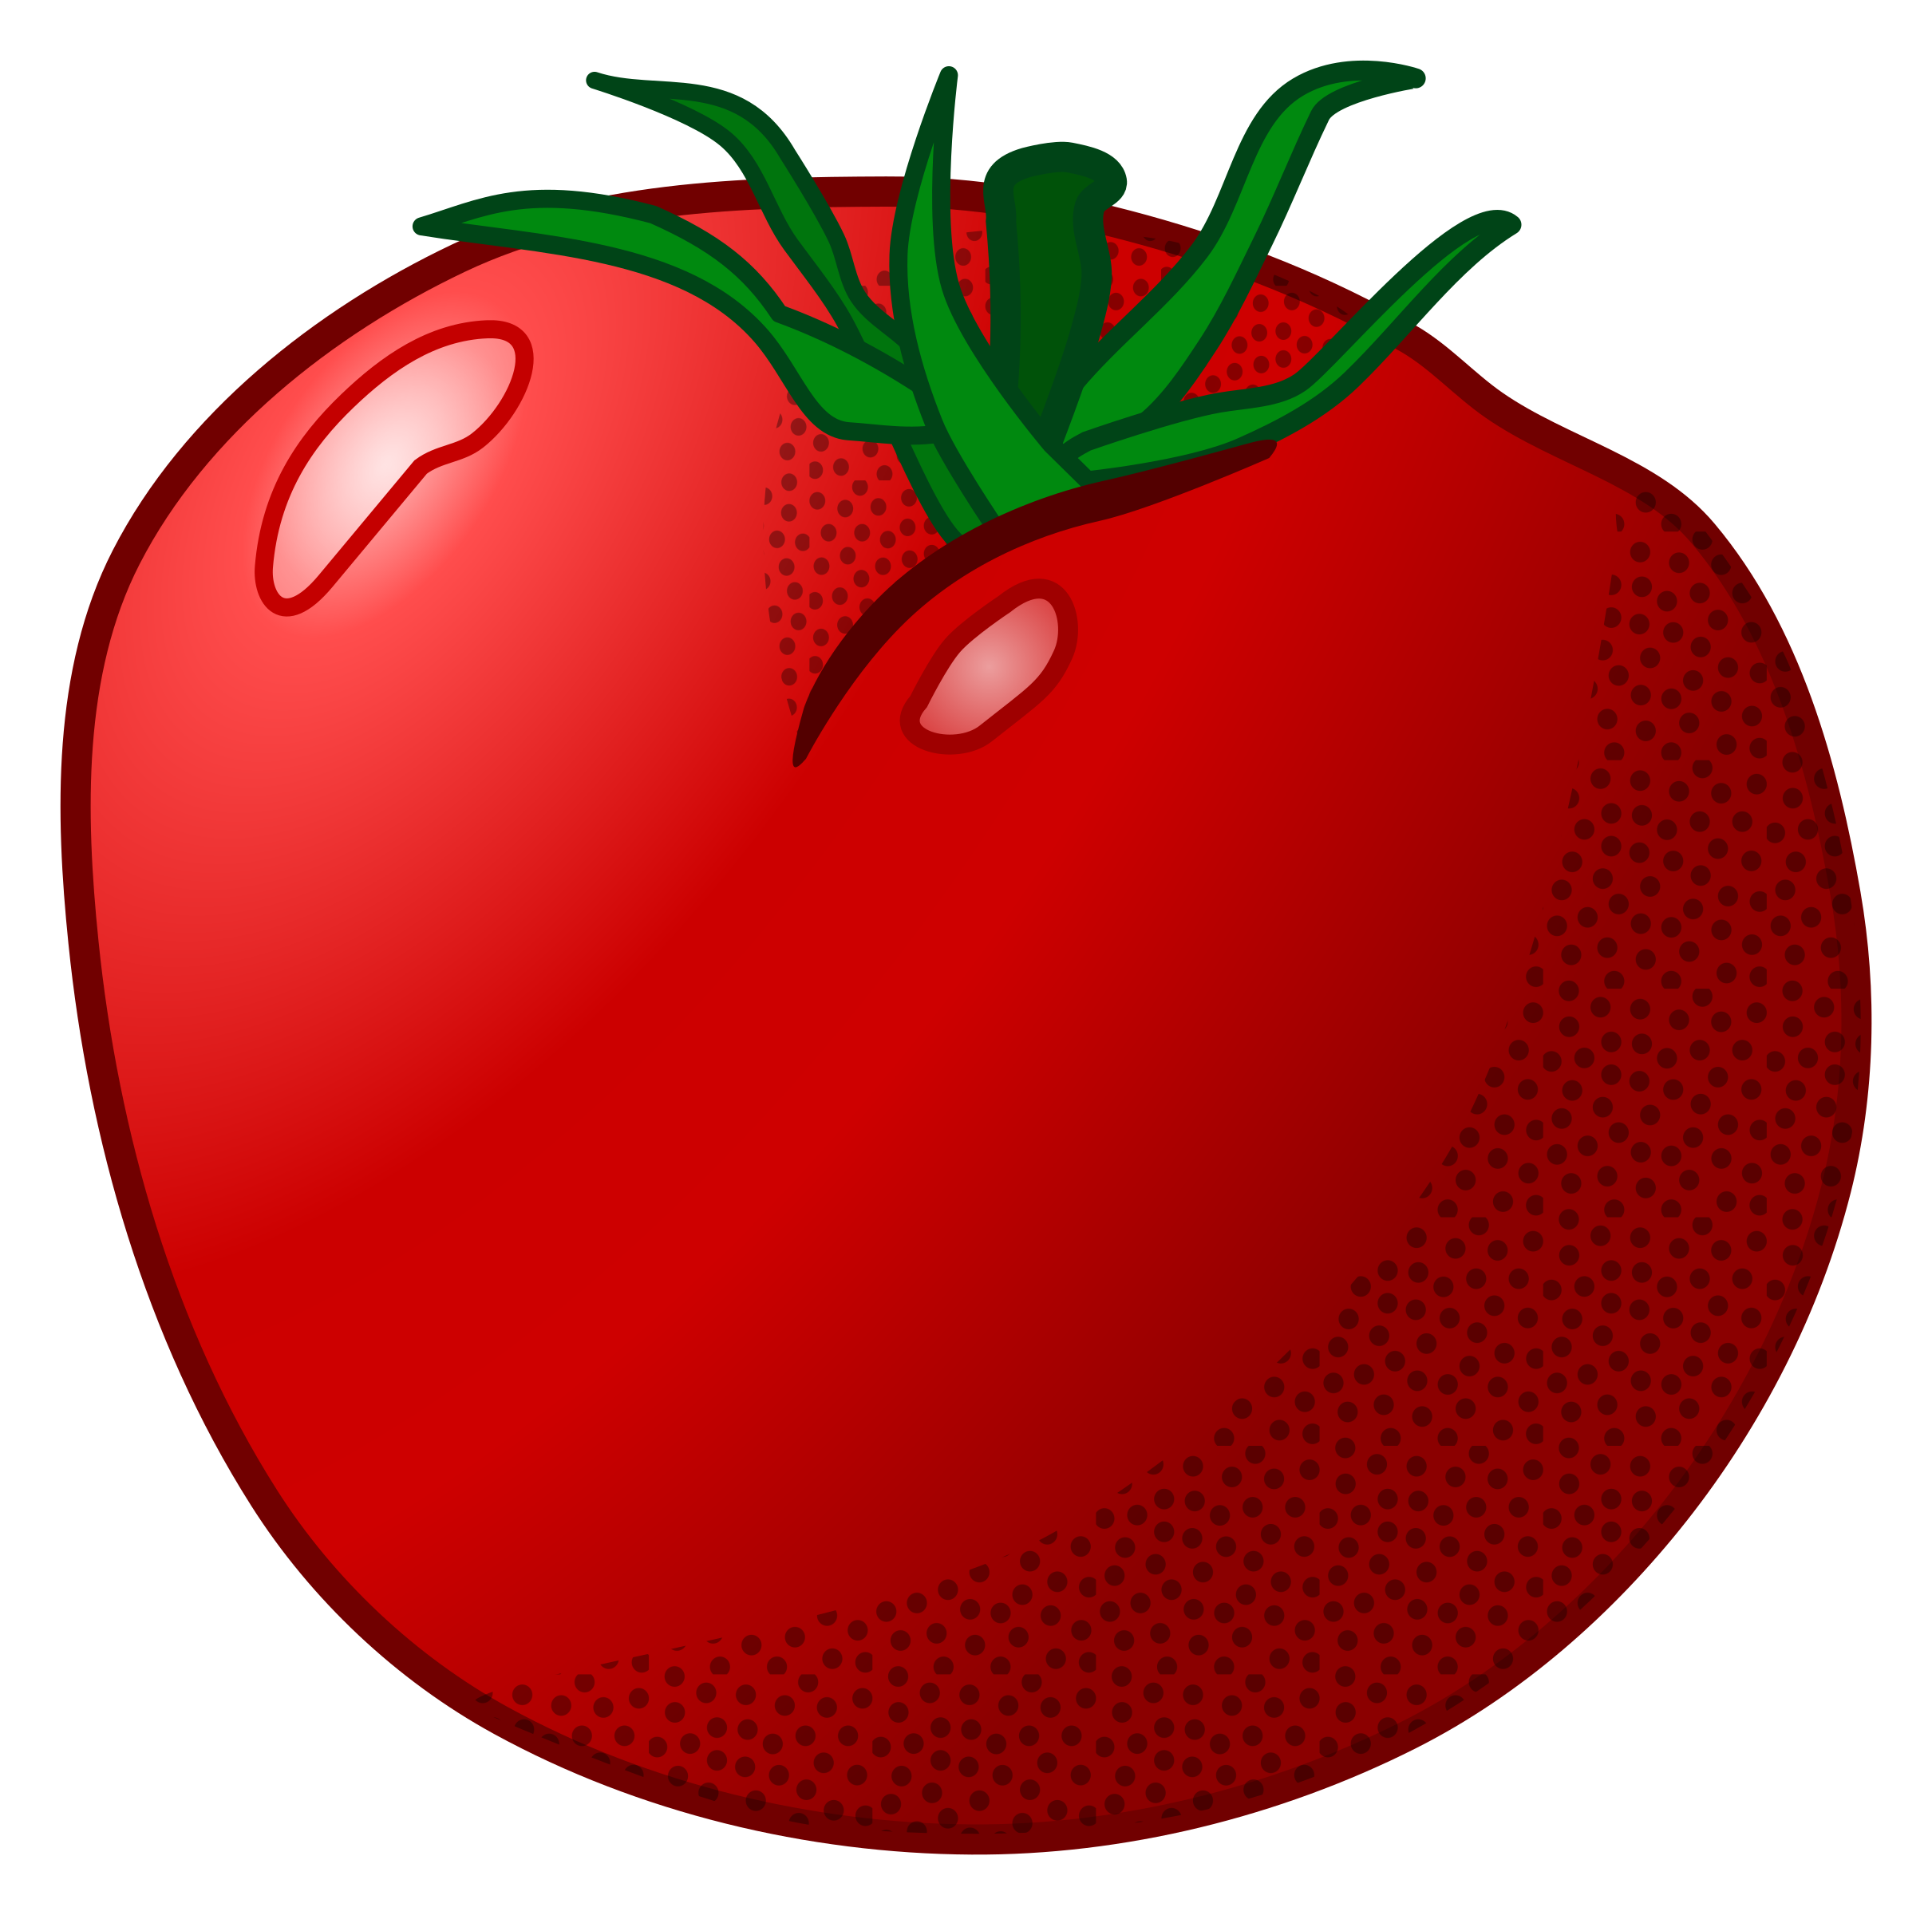 Tomato clip art free clipart images.